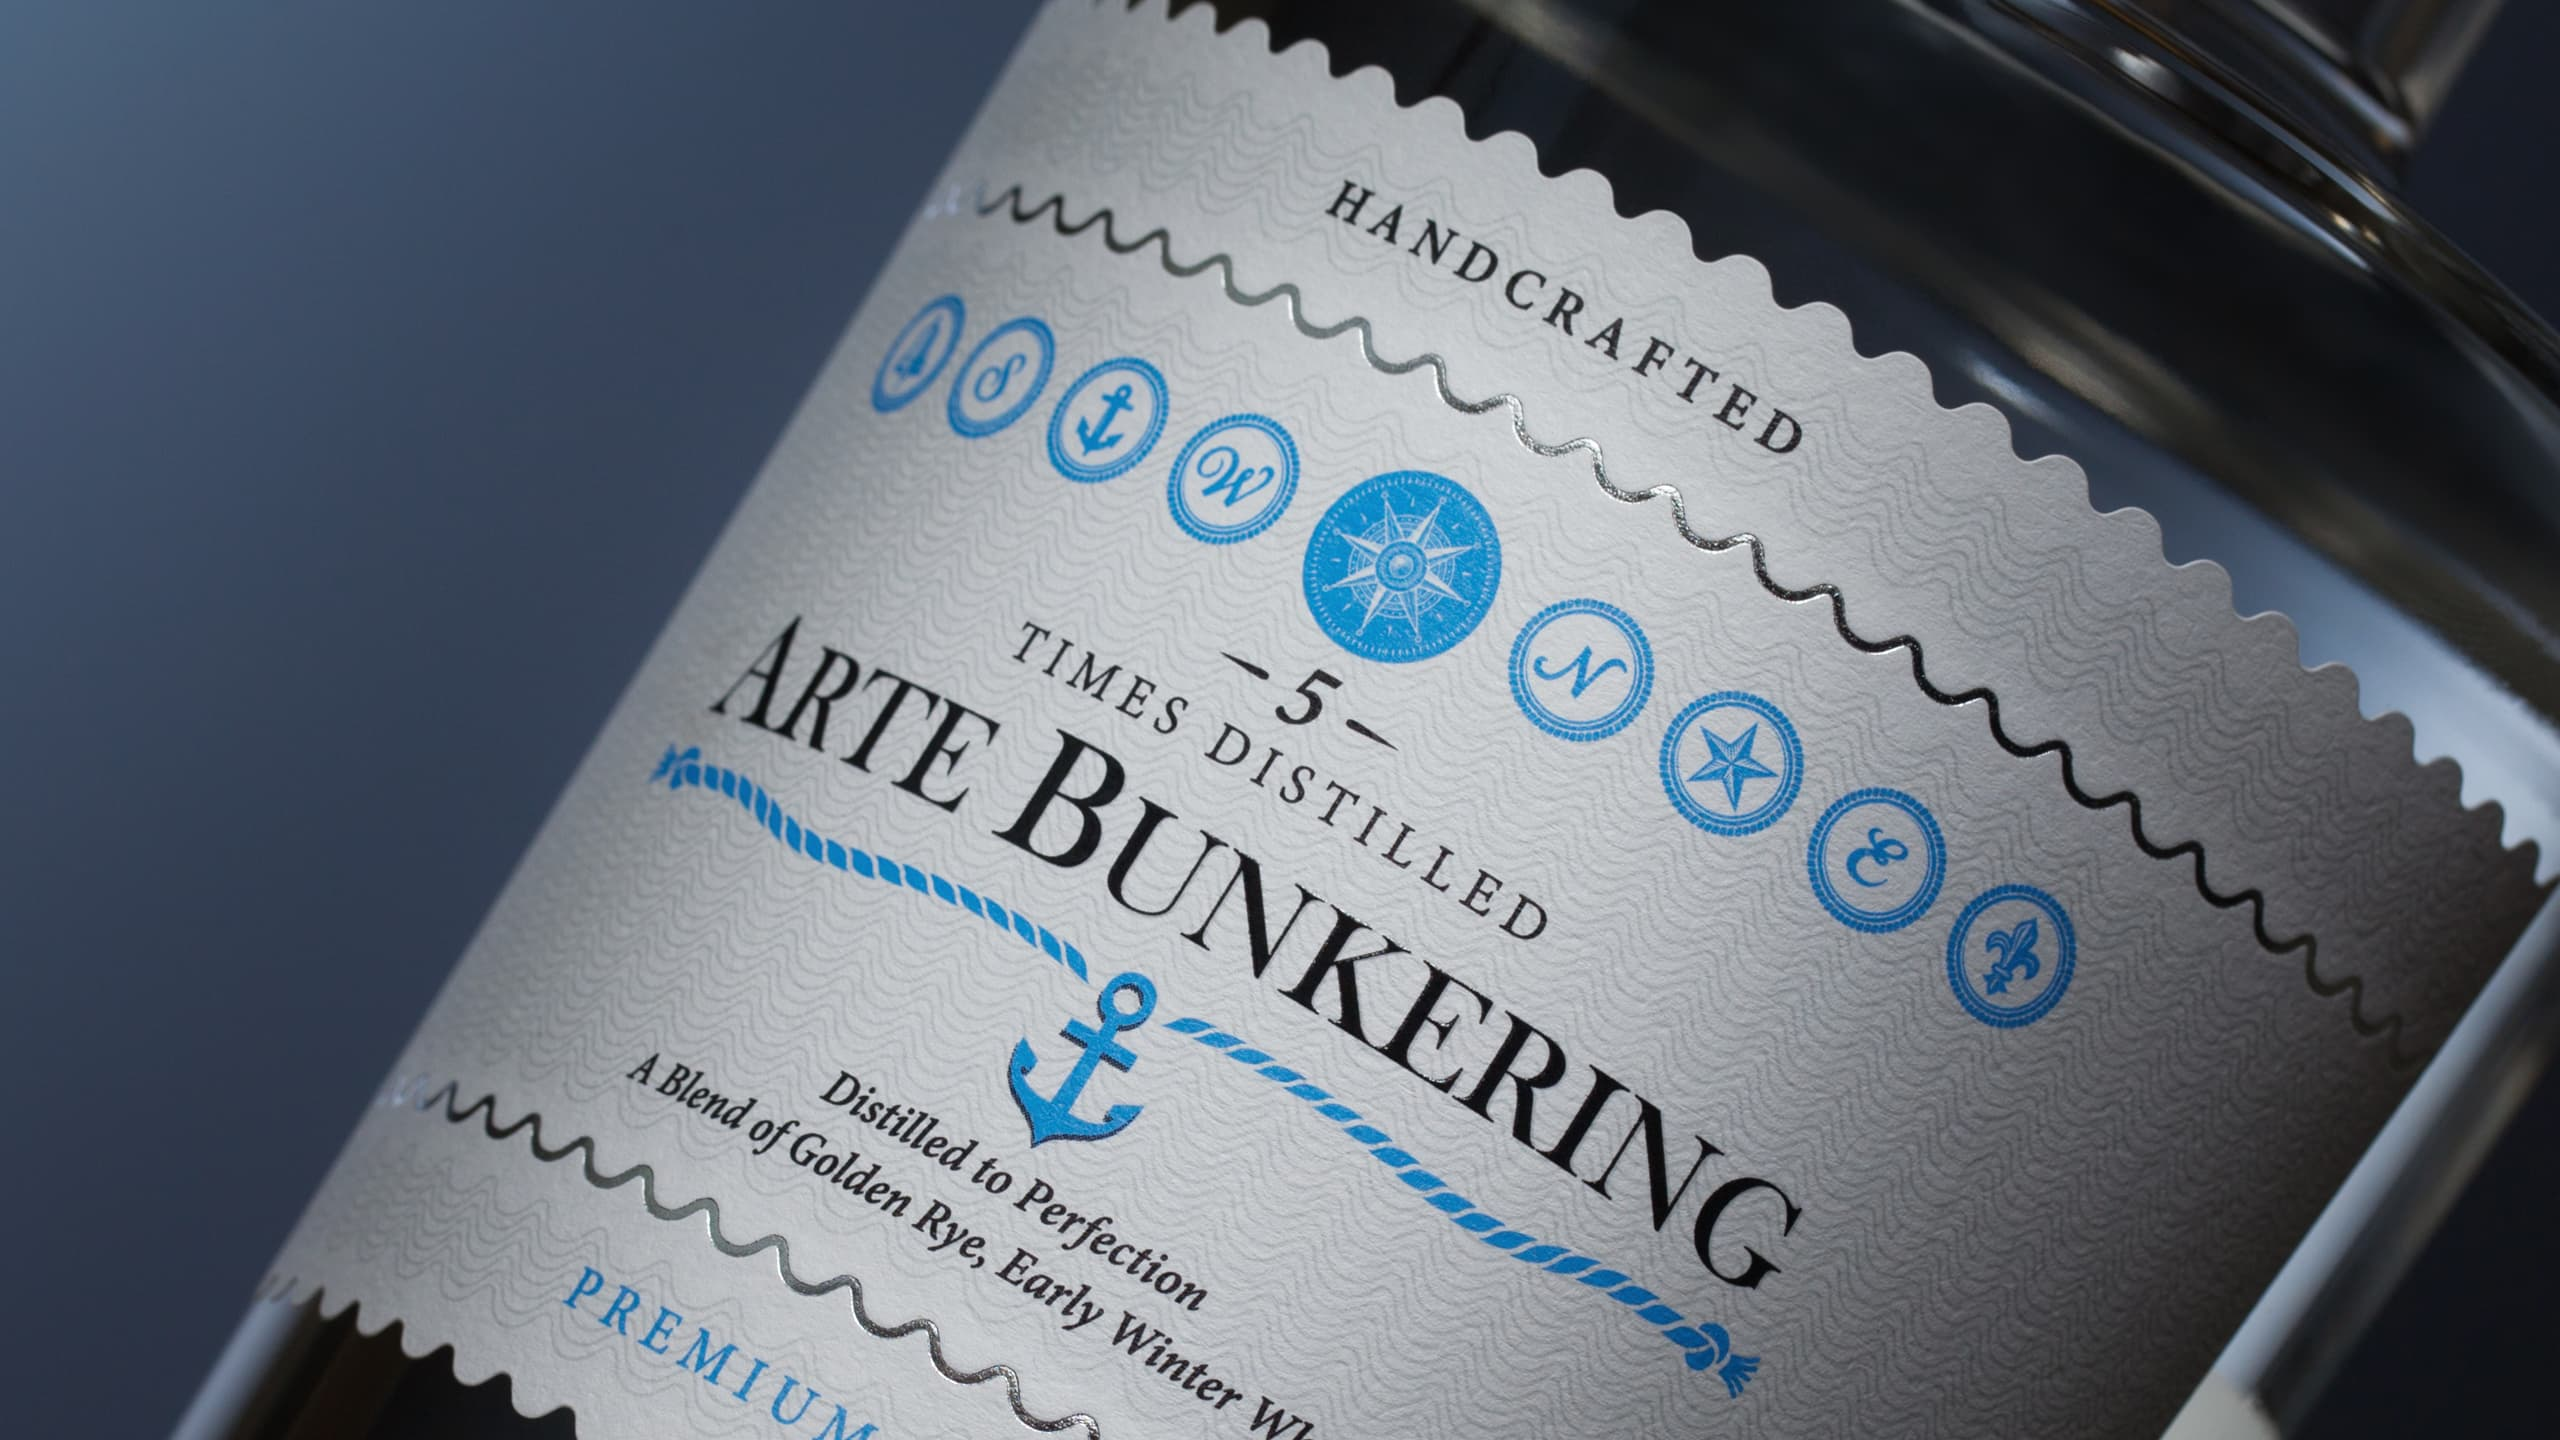 Arte Bunkering Packaging